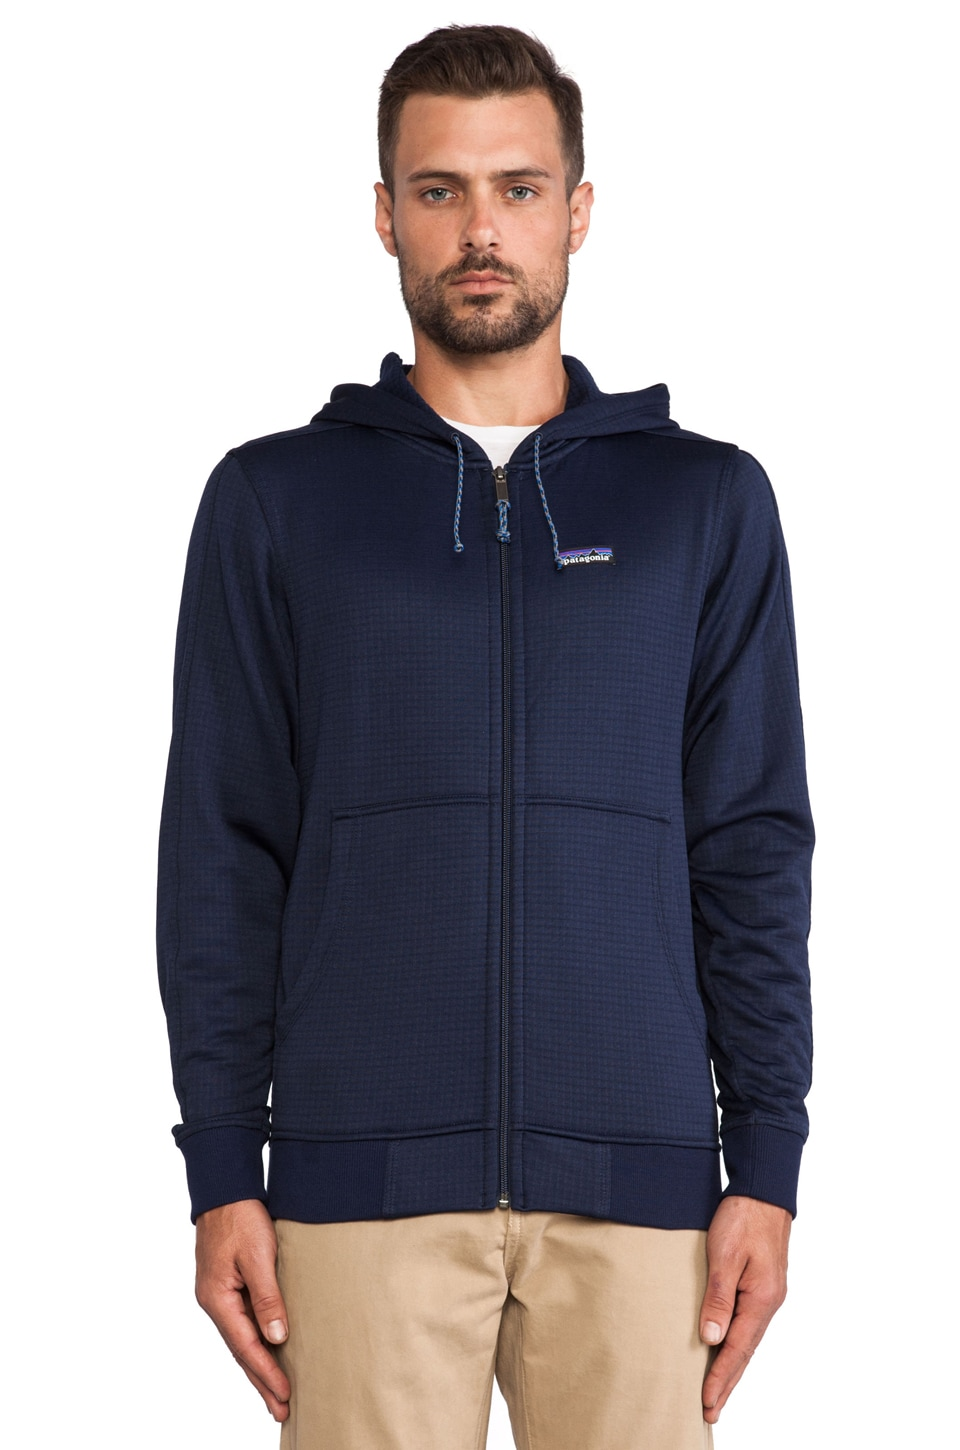 Patagonia Upslope Hoody in Classic Navy